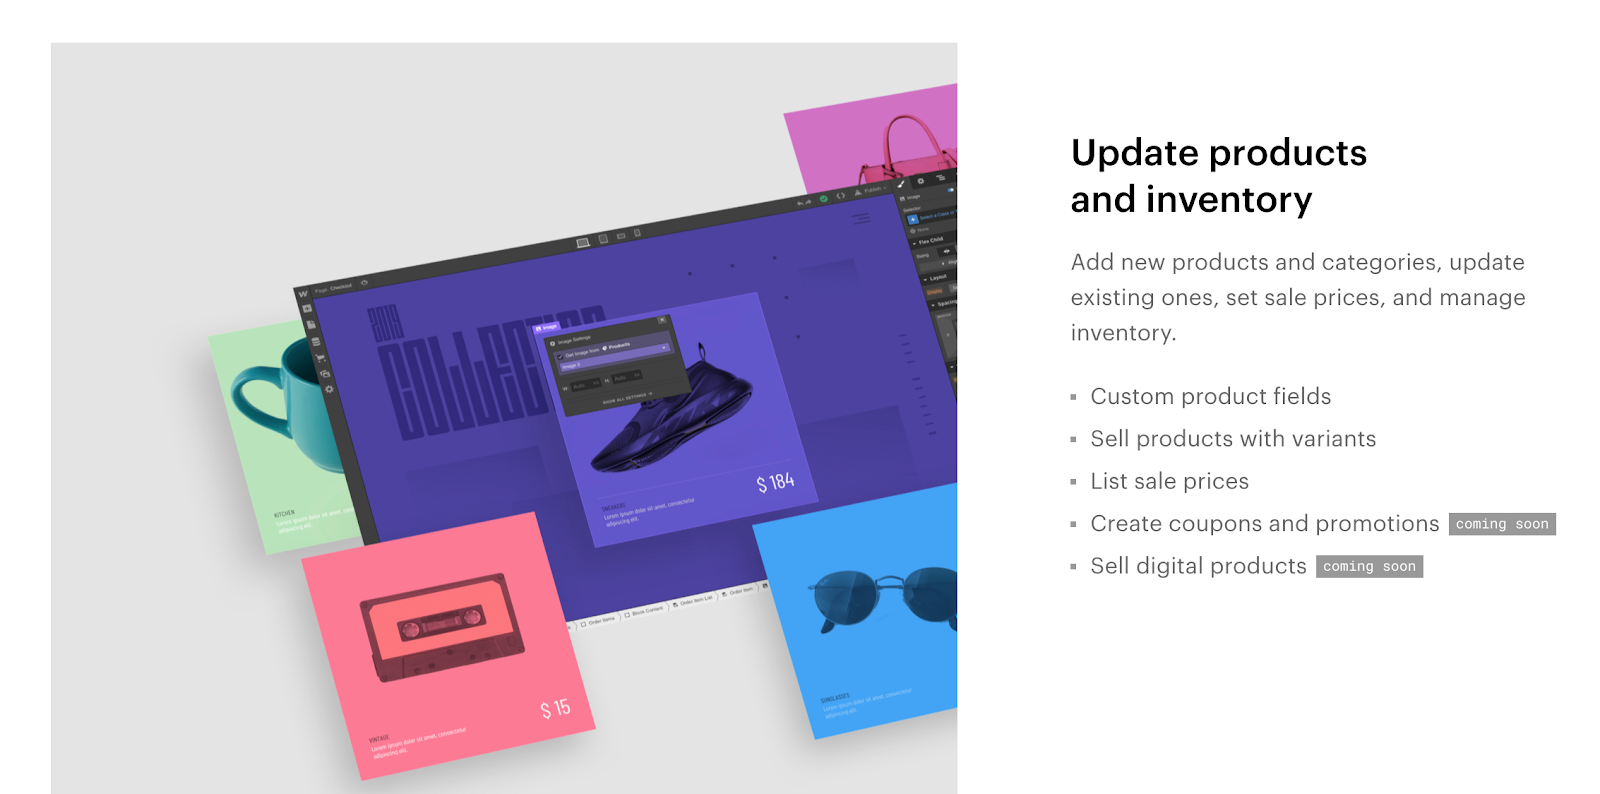 Webflow Ecommerce's inventory management tools, including custom product fields, product variants, and sale pricess